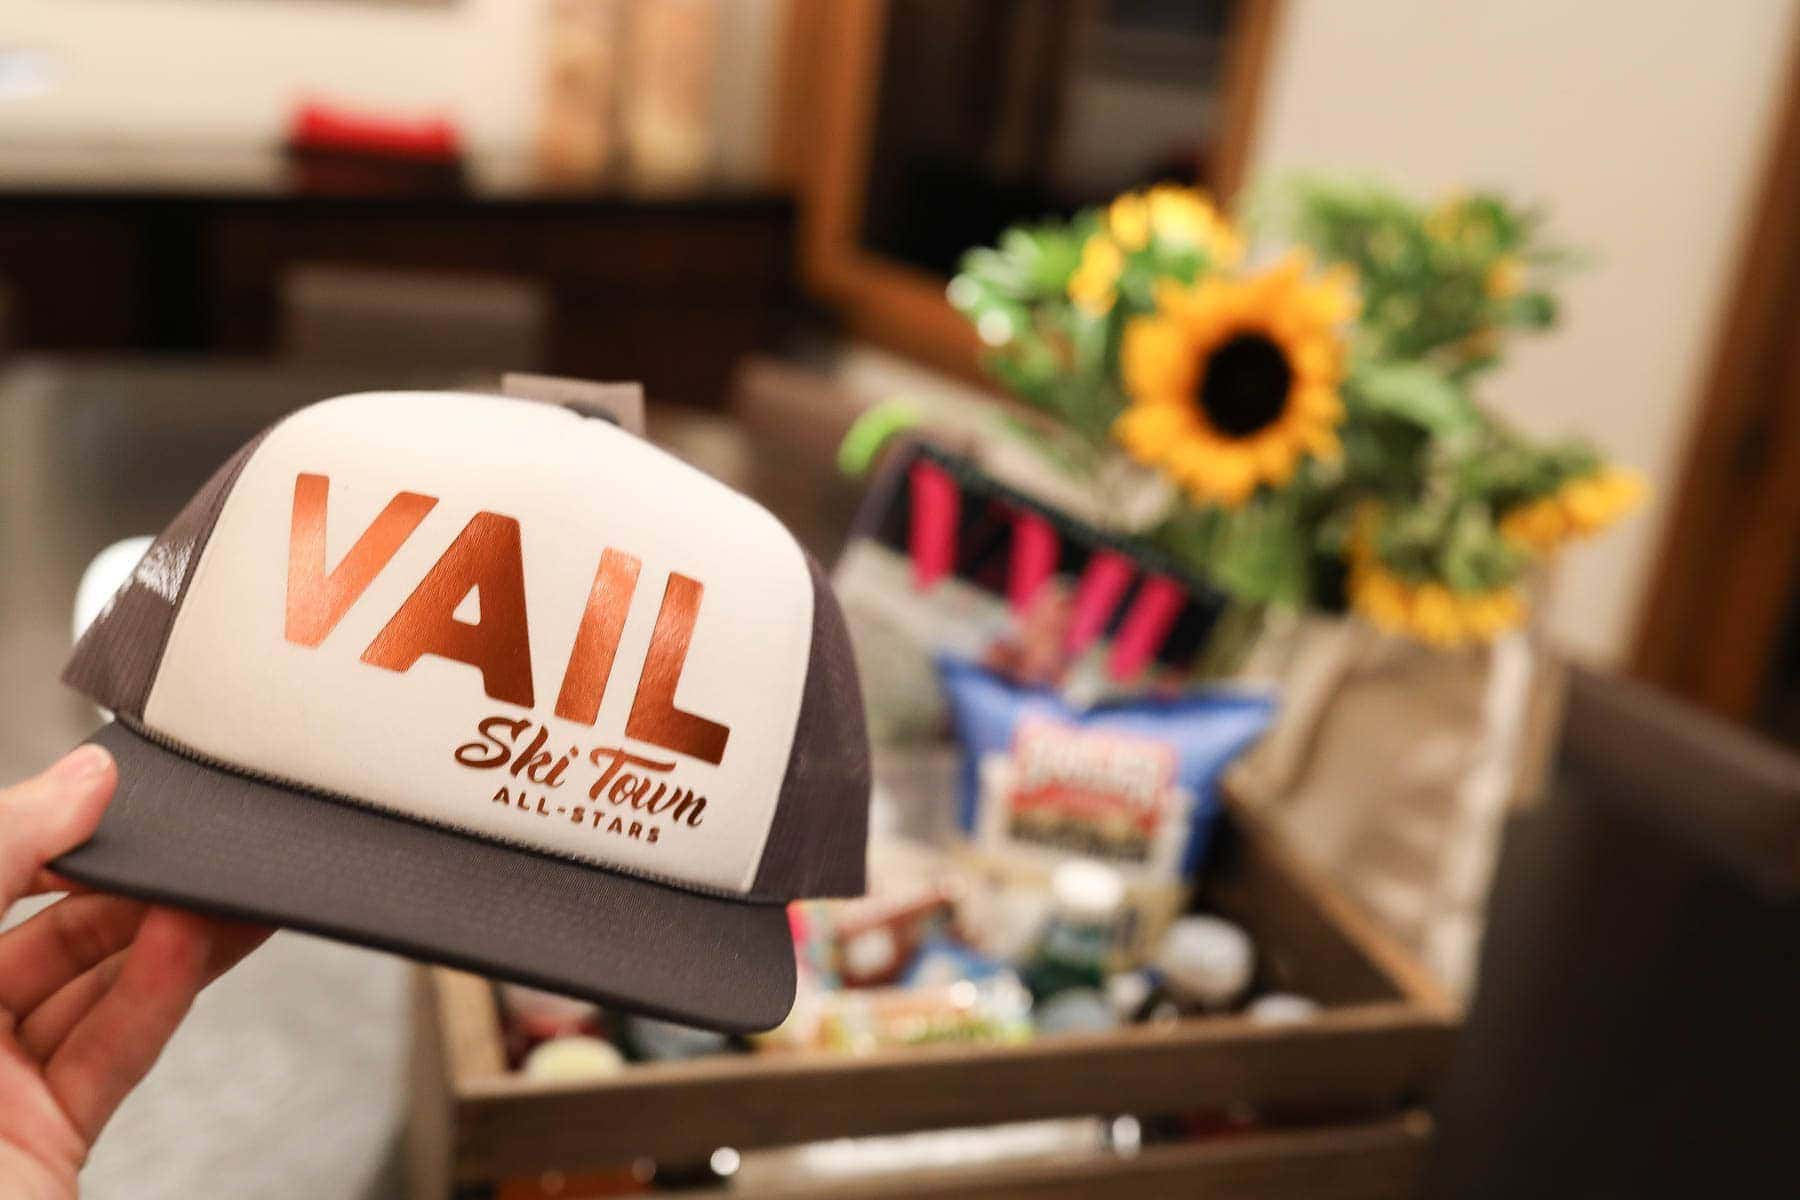 Vail Ski Town All-Stars Cap #summer #vailcolorado #vacation #citygirlgonemom